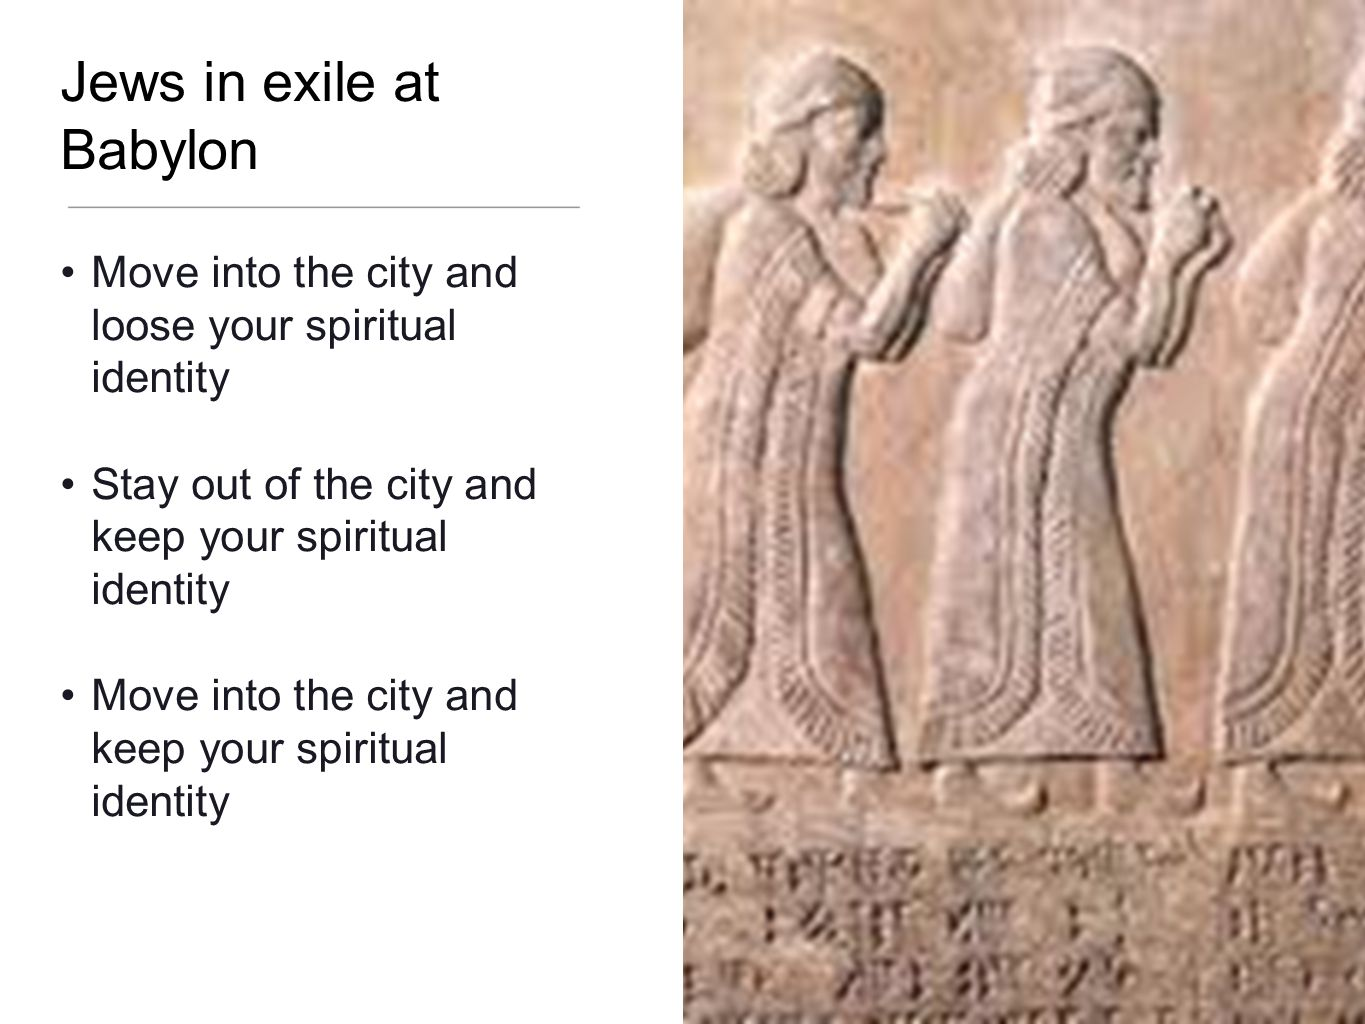 Jews in exile at Babylon Move into the city and loose your spiritual identity Stay out of the city and keep your spiritual identity Move into the city